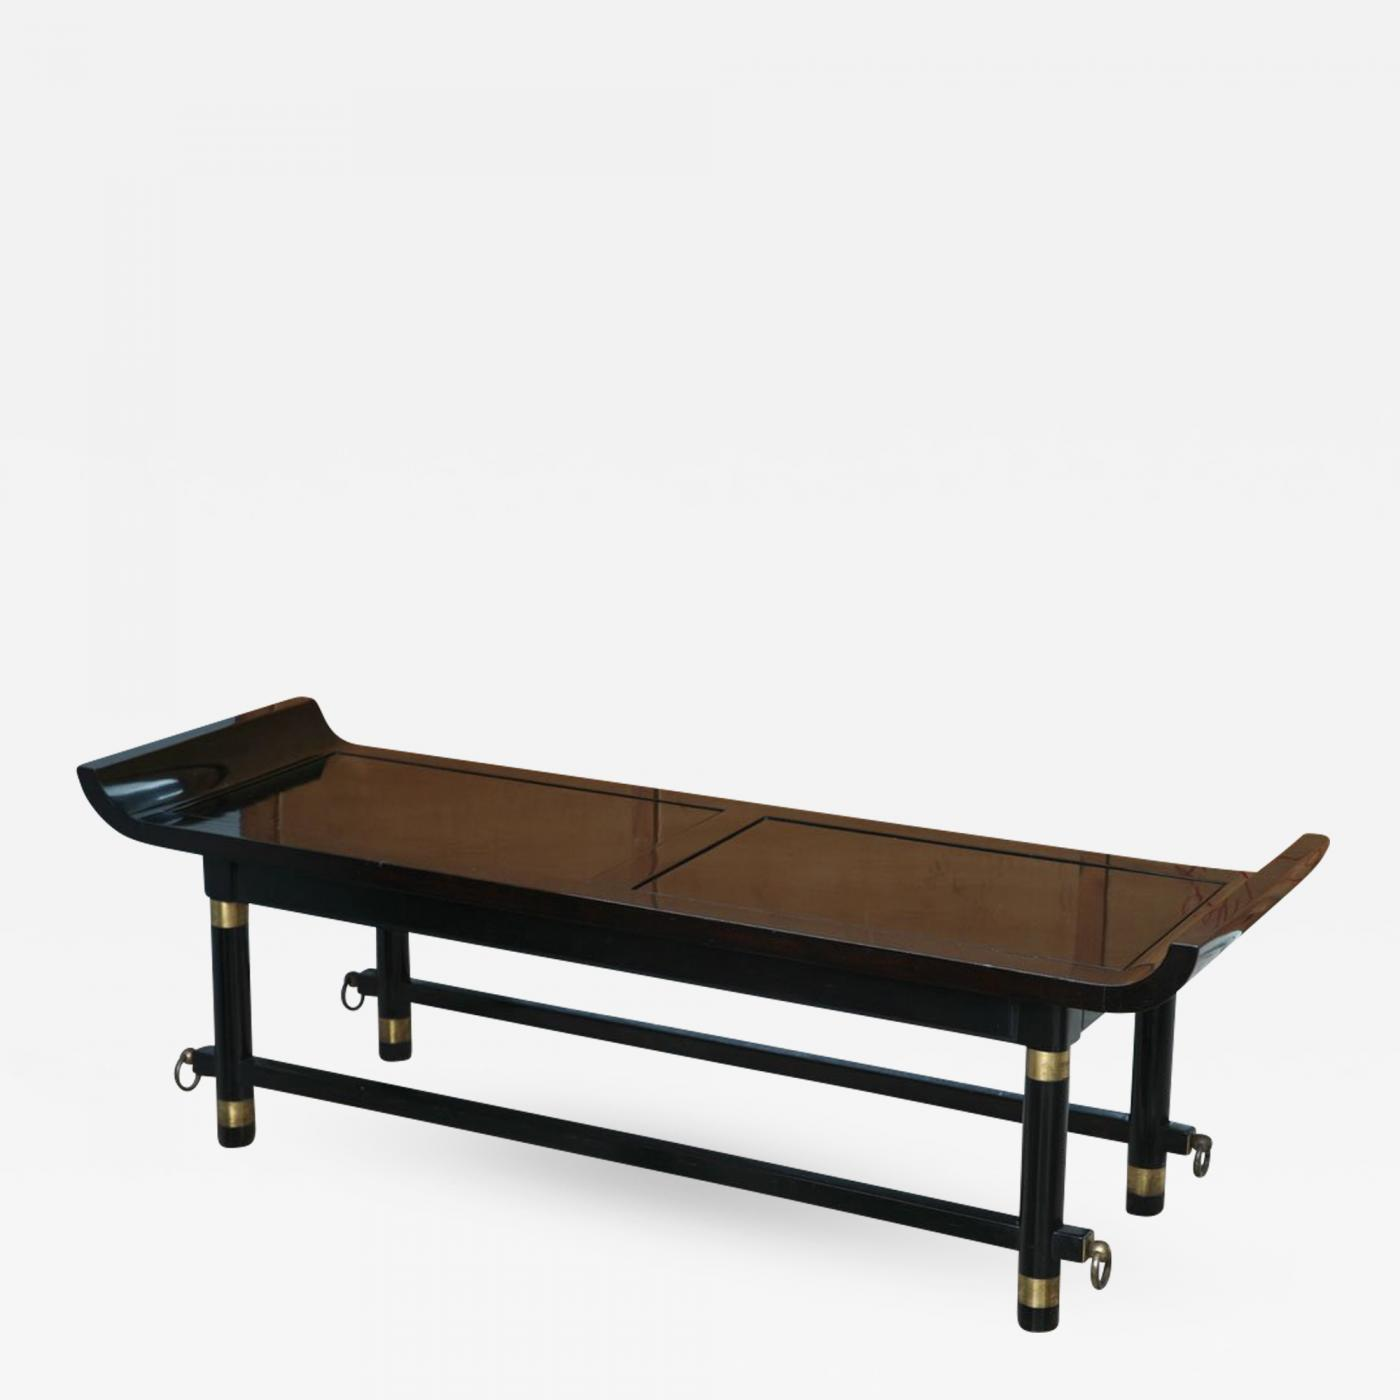 Excellent James Mont Black Lacquer And Brass Mounted Bench Probably James Mont Creativecarmelina Interior Chair Design Creativecarmelinacom